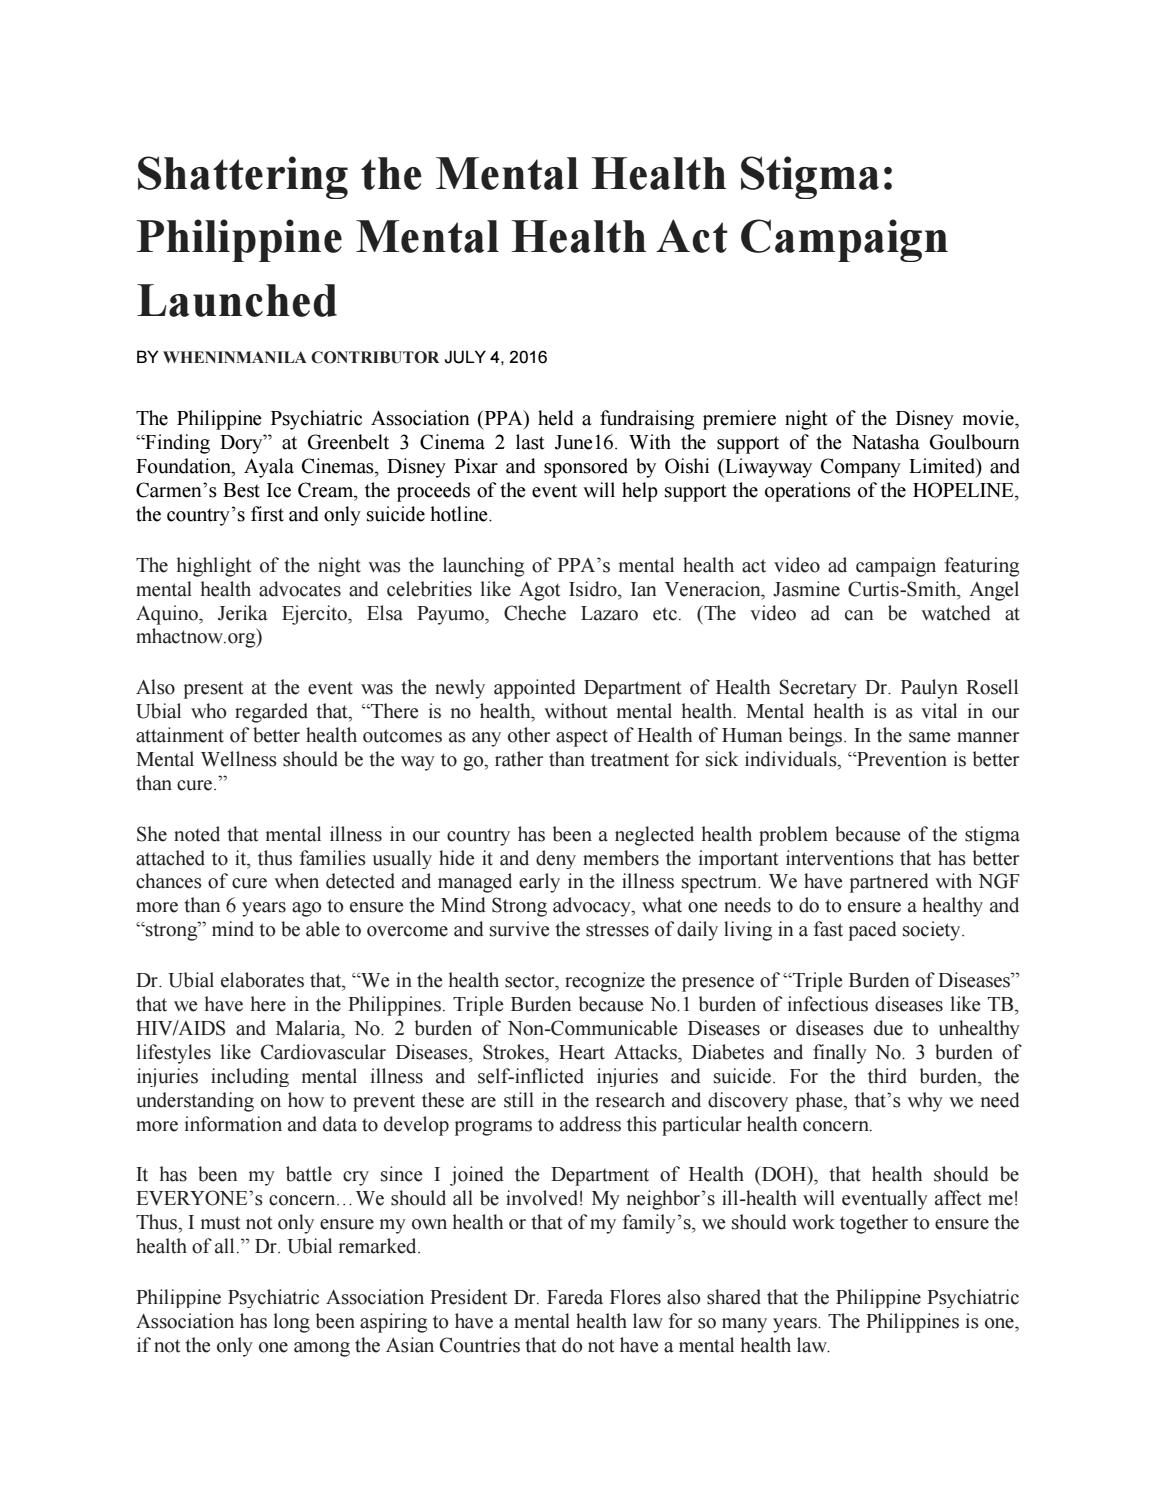 Shattering The Mental Health Stigma By Debbie Alvarico Issuu